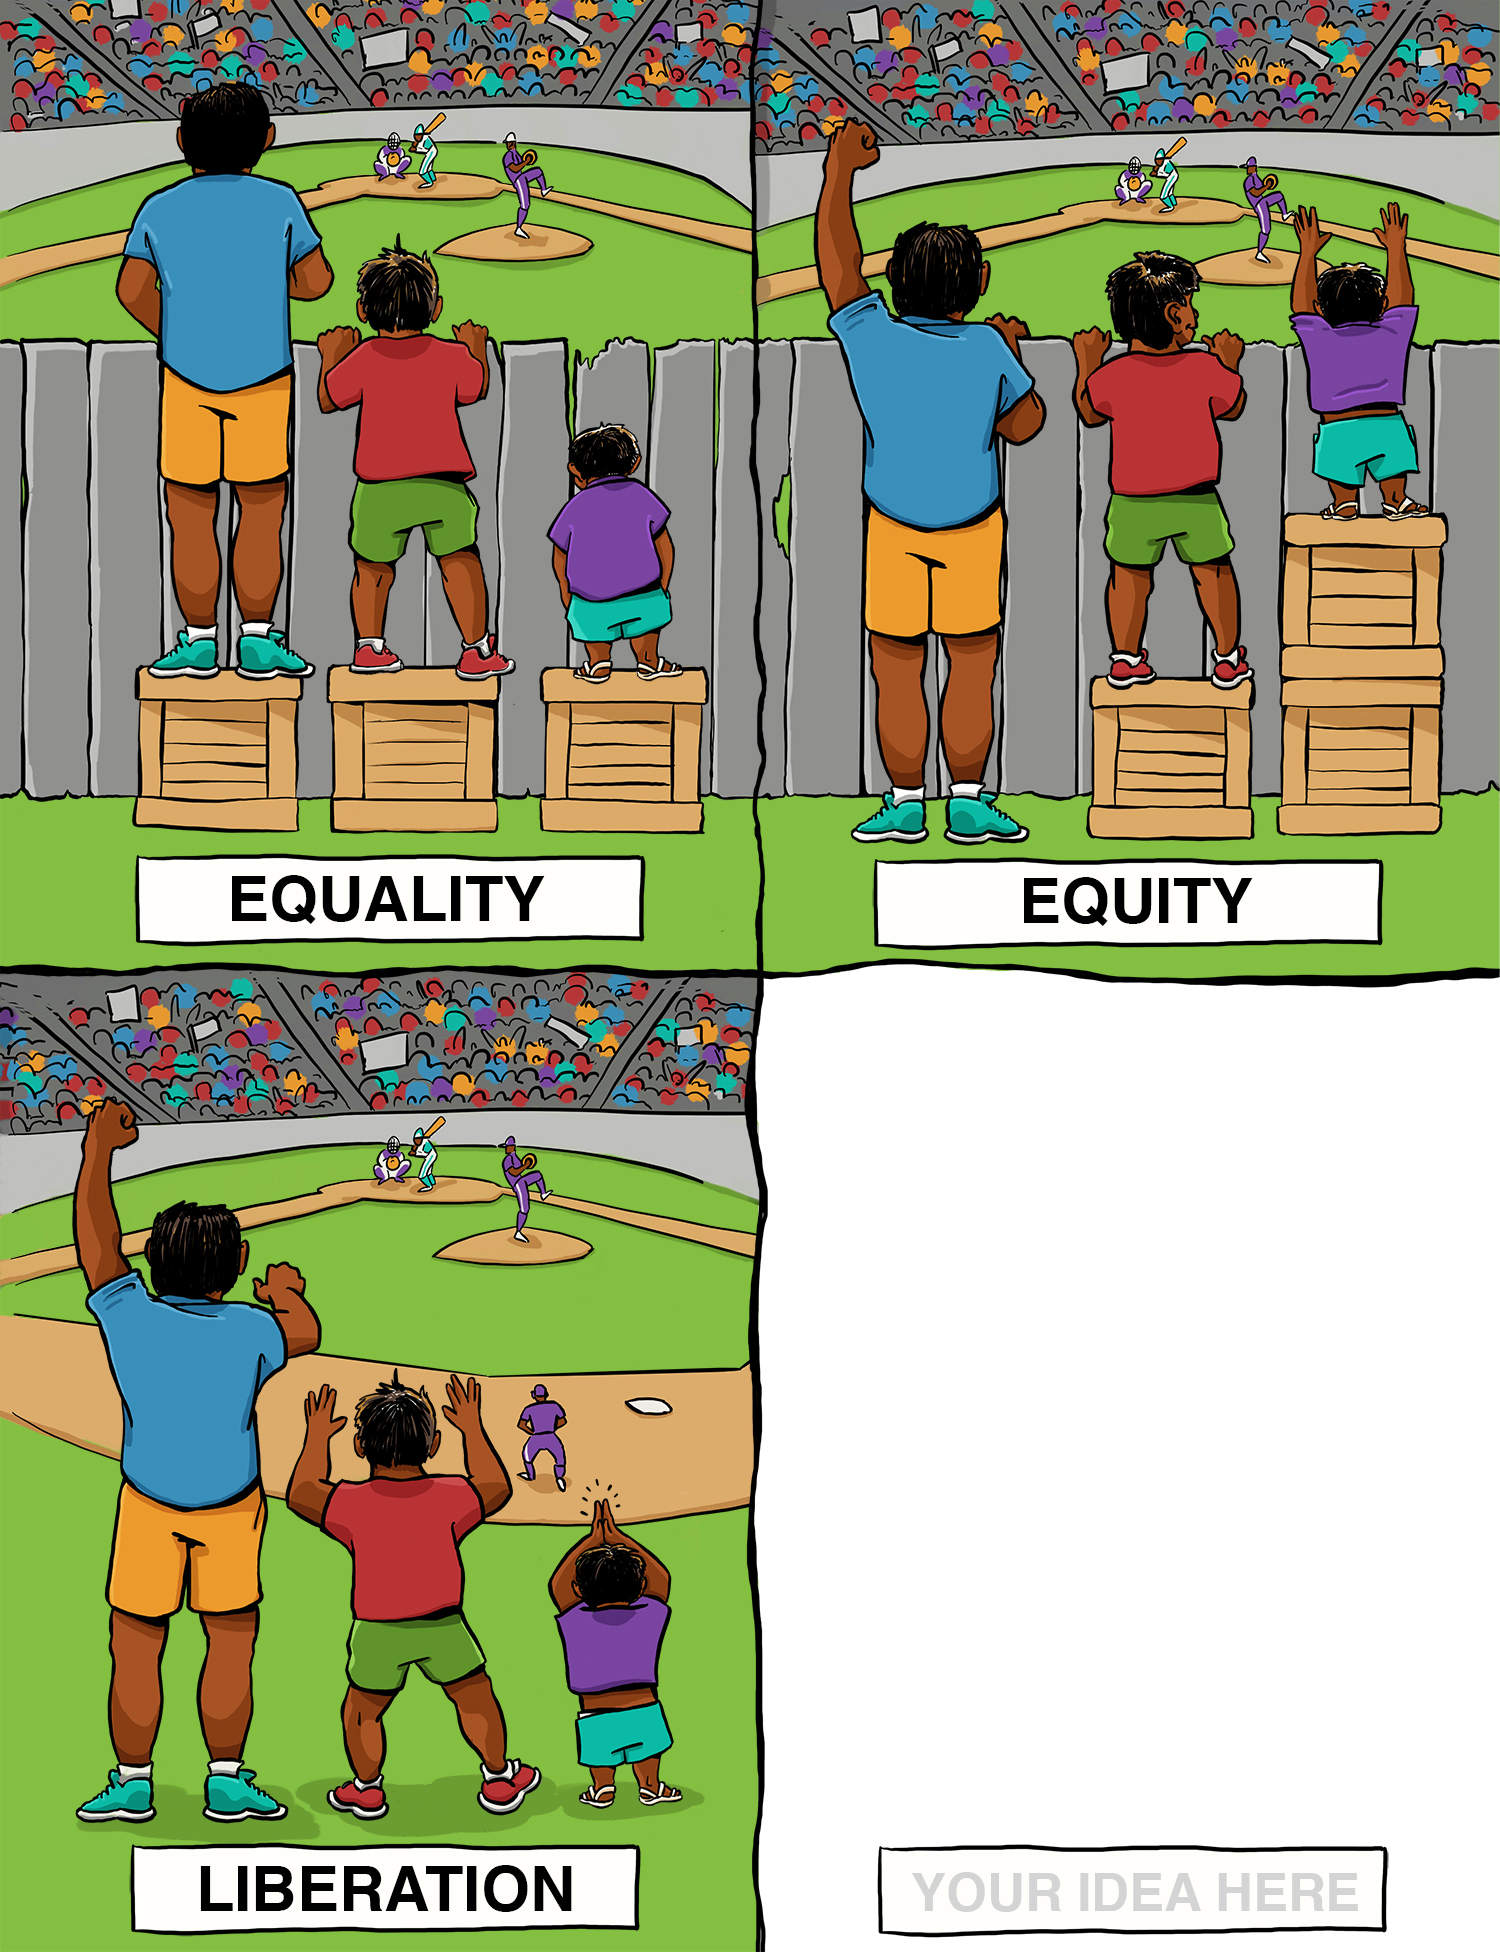 Equality Vs Equity Made With Angus